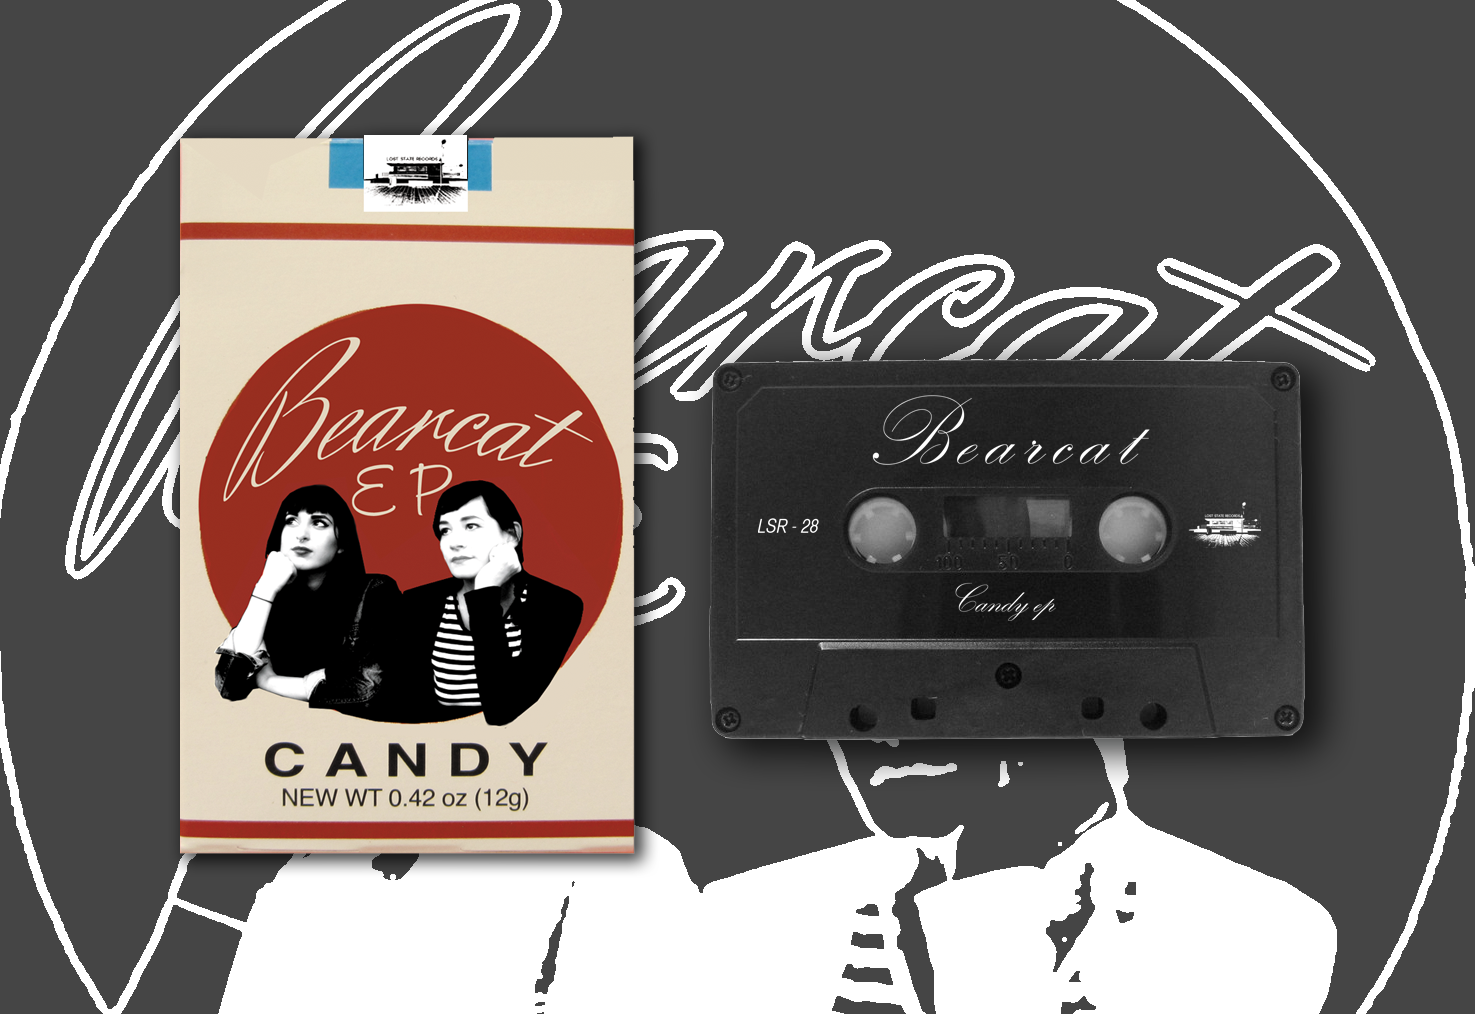 Bearcats Candy EP | CS